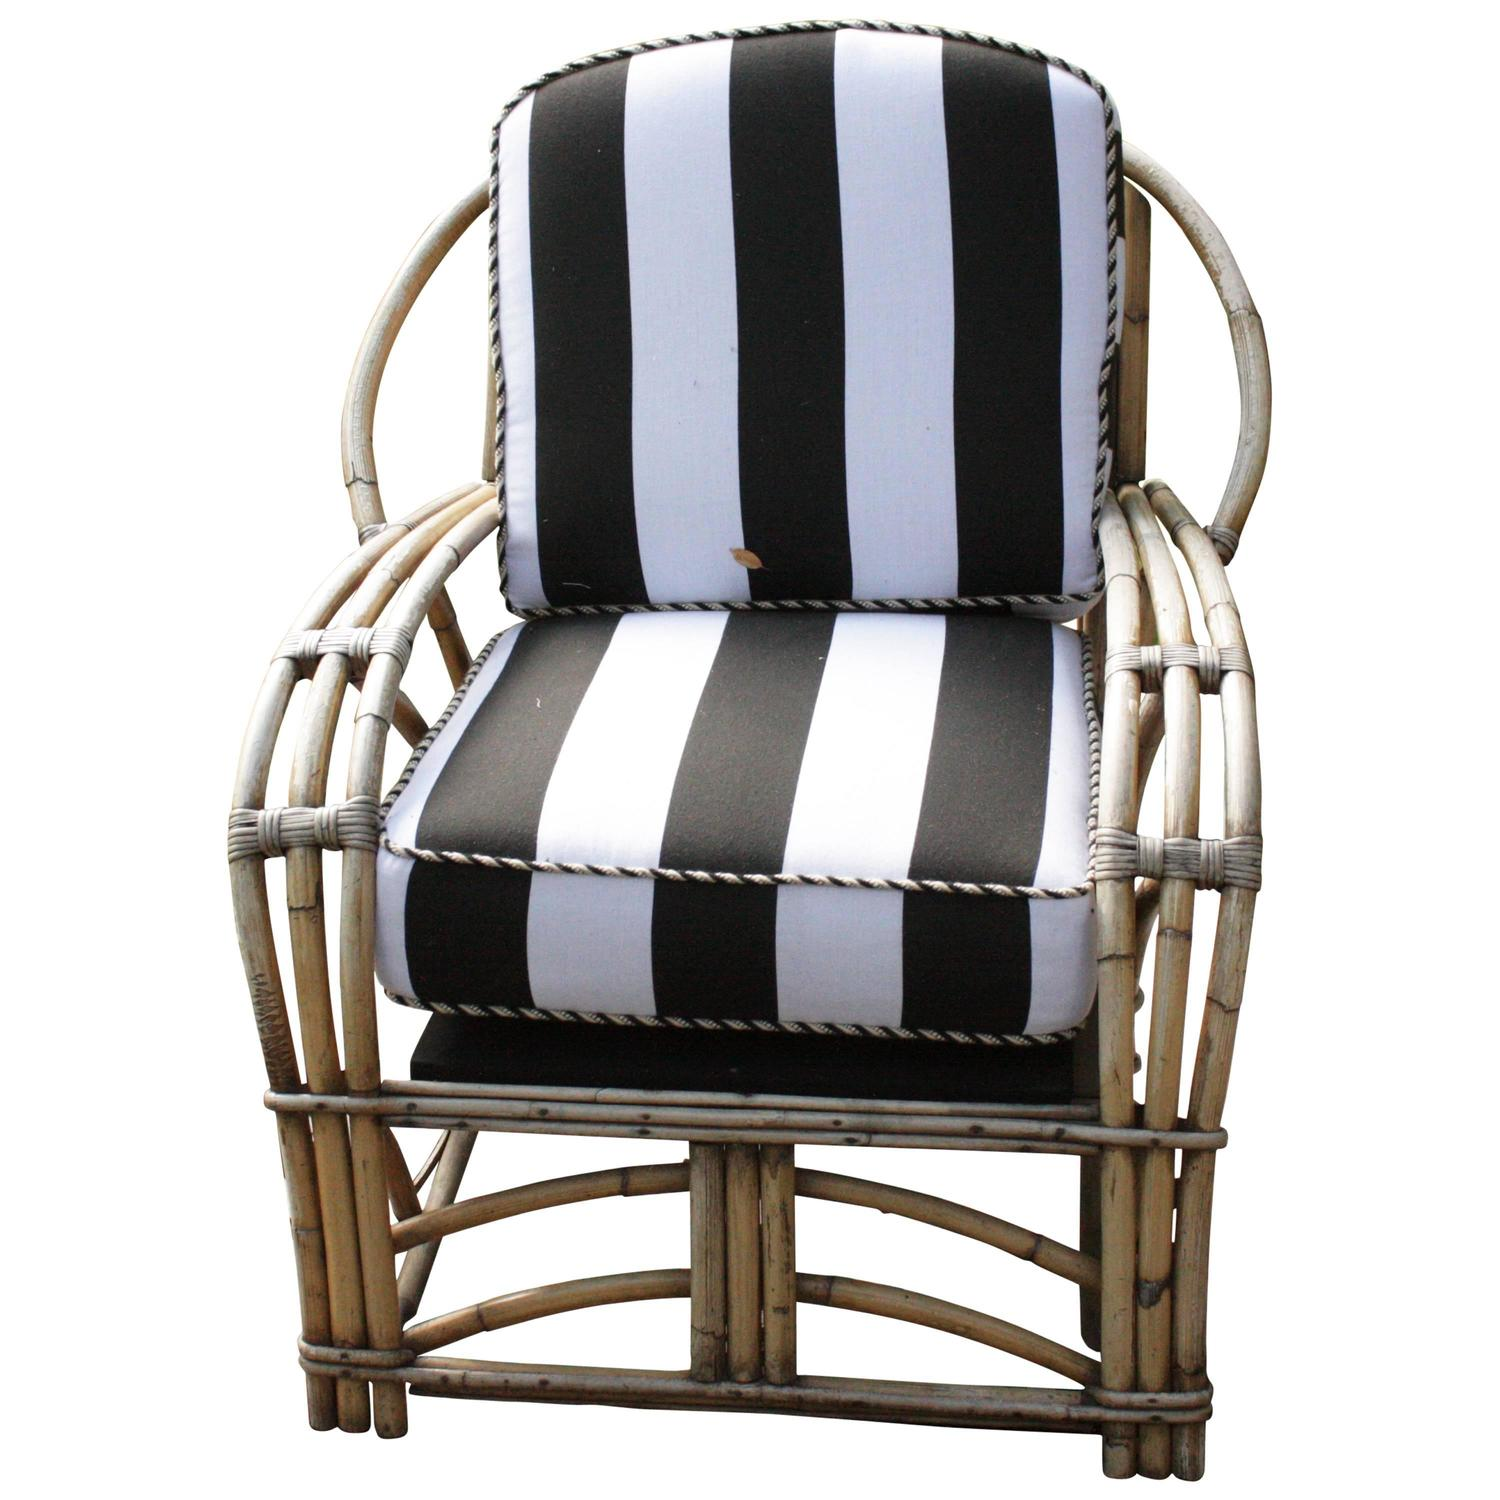 1960u0027s Outdoor Bamboo Framed Armchair With Round Back Arms Bengal Striped  Cushion